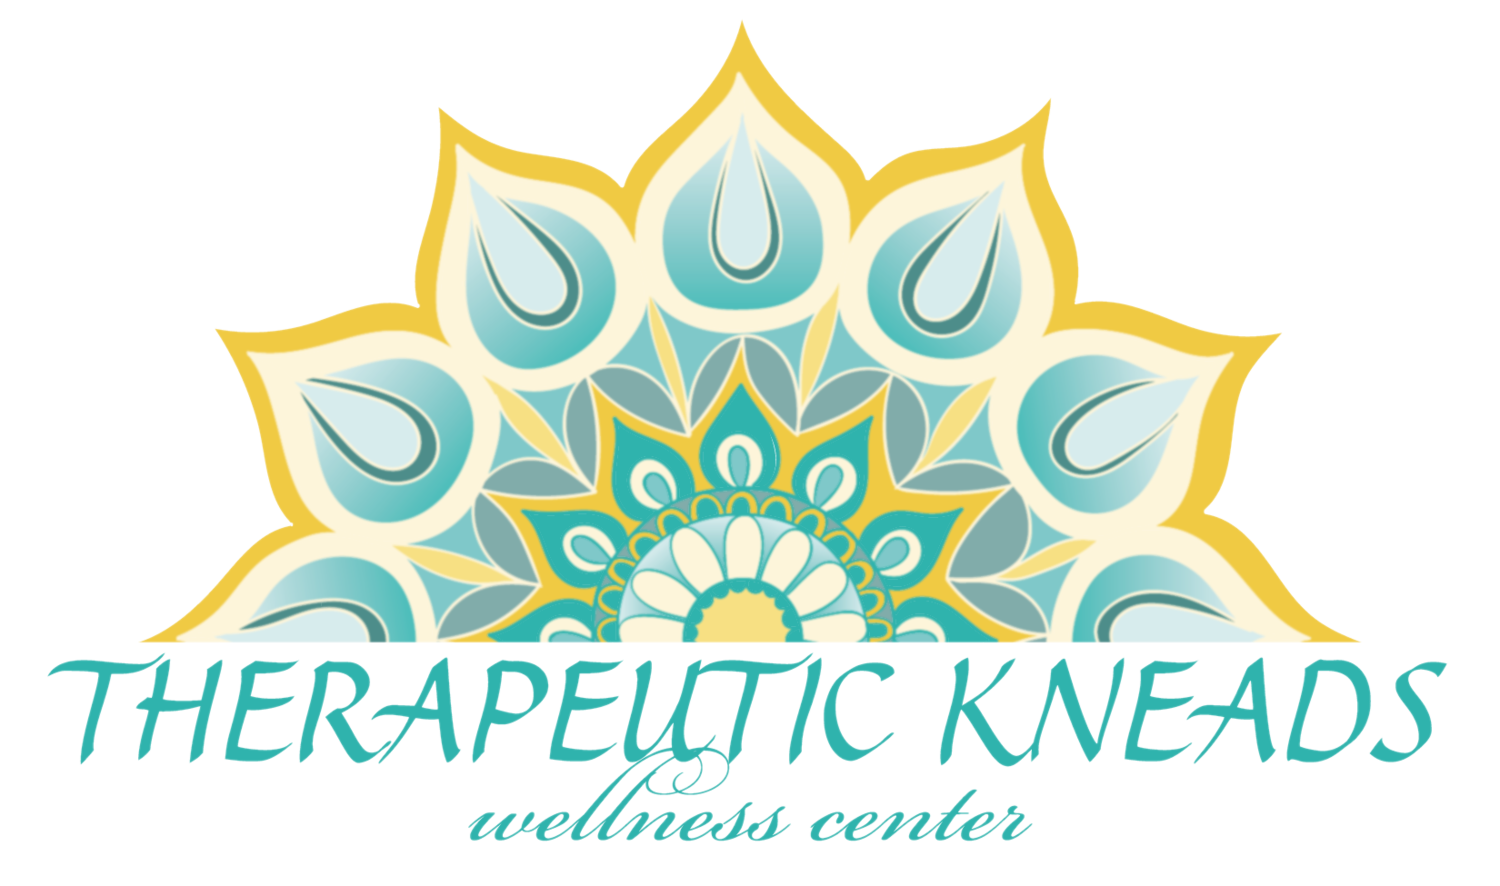 Therapeutic Kneads Wellness Center